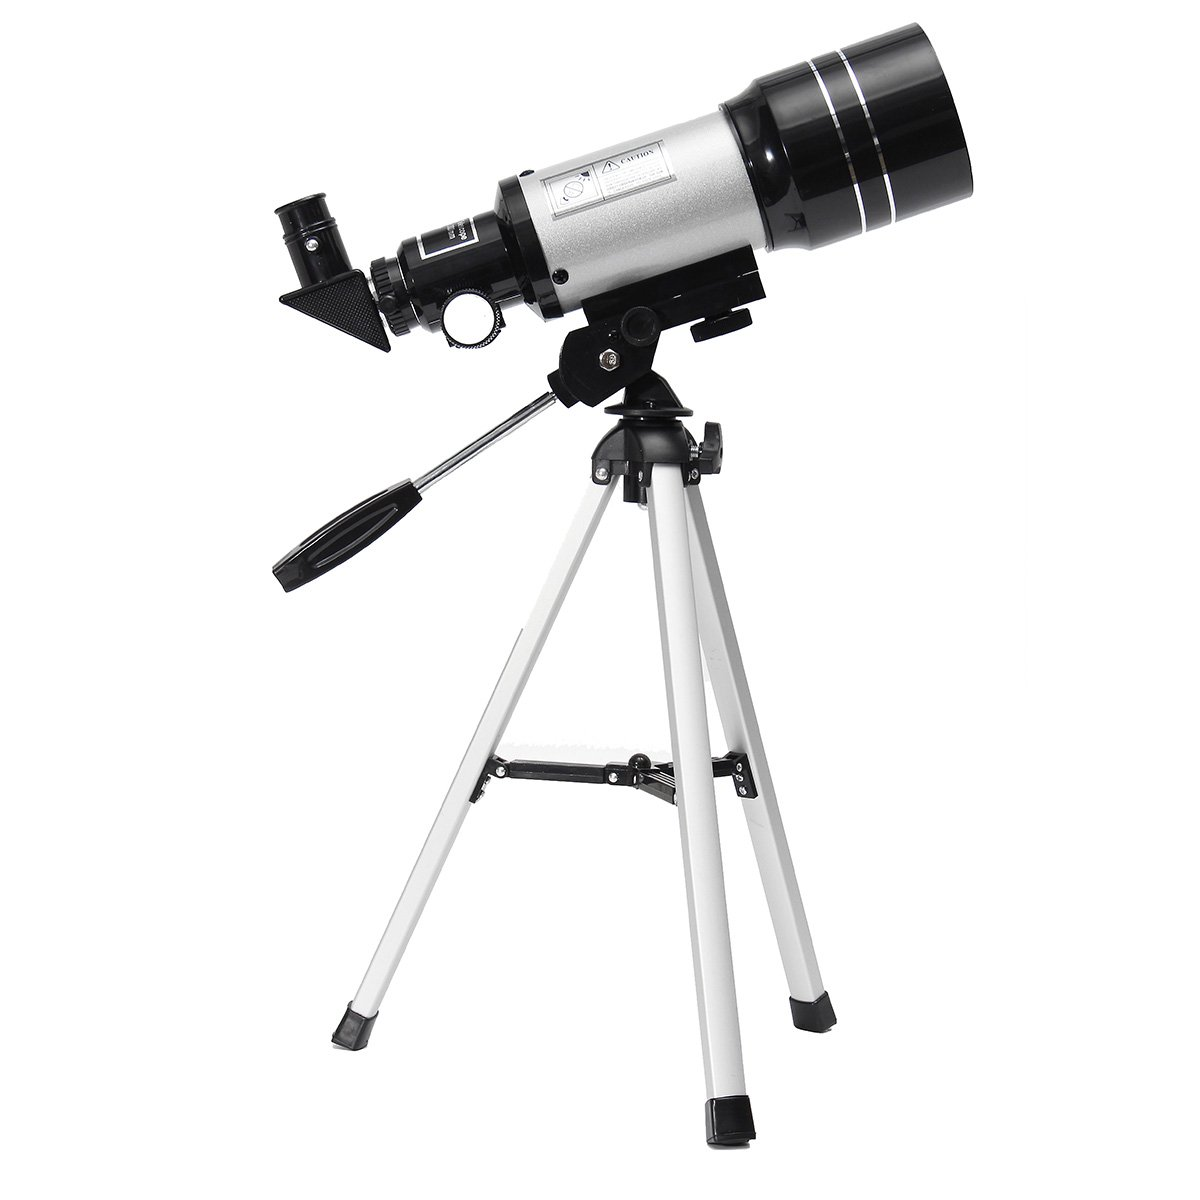 Inovey Outdoor F30070M HD Monokulares High Definition Terrestrisches Astronomisches Teleskop mit Stativ